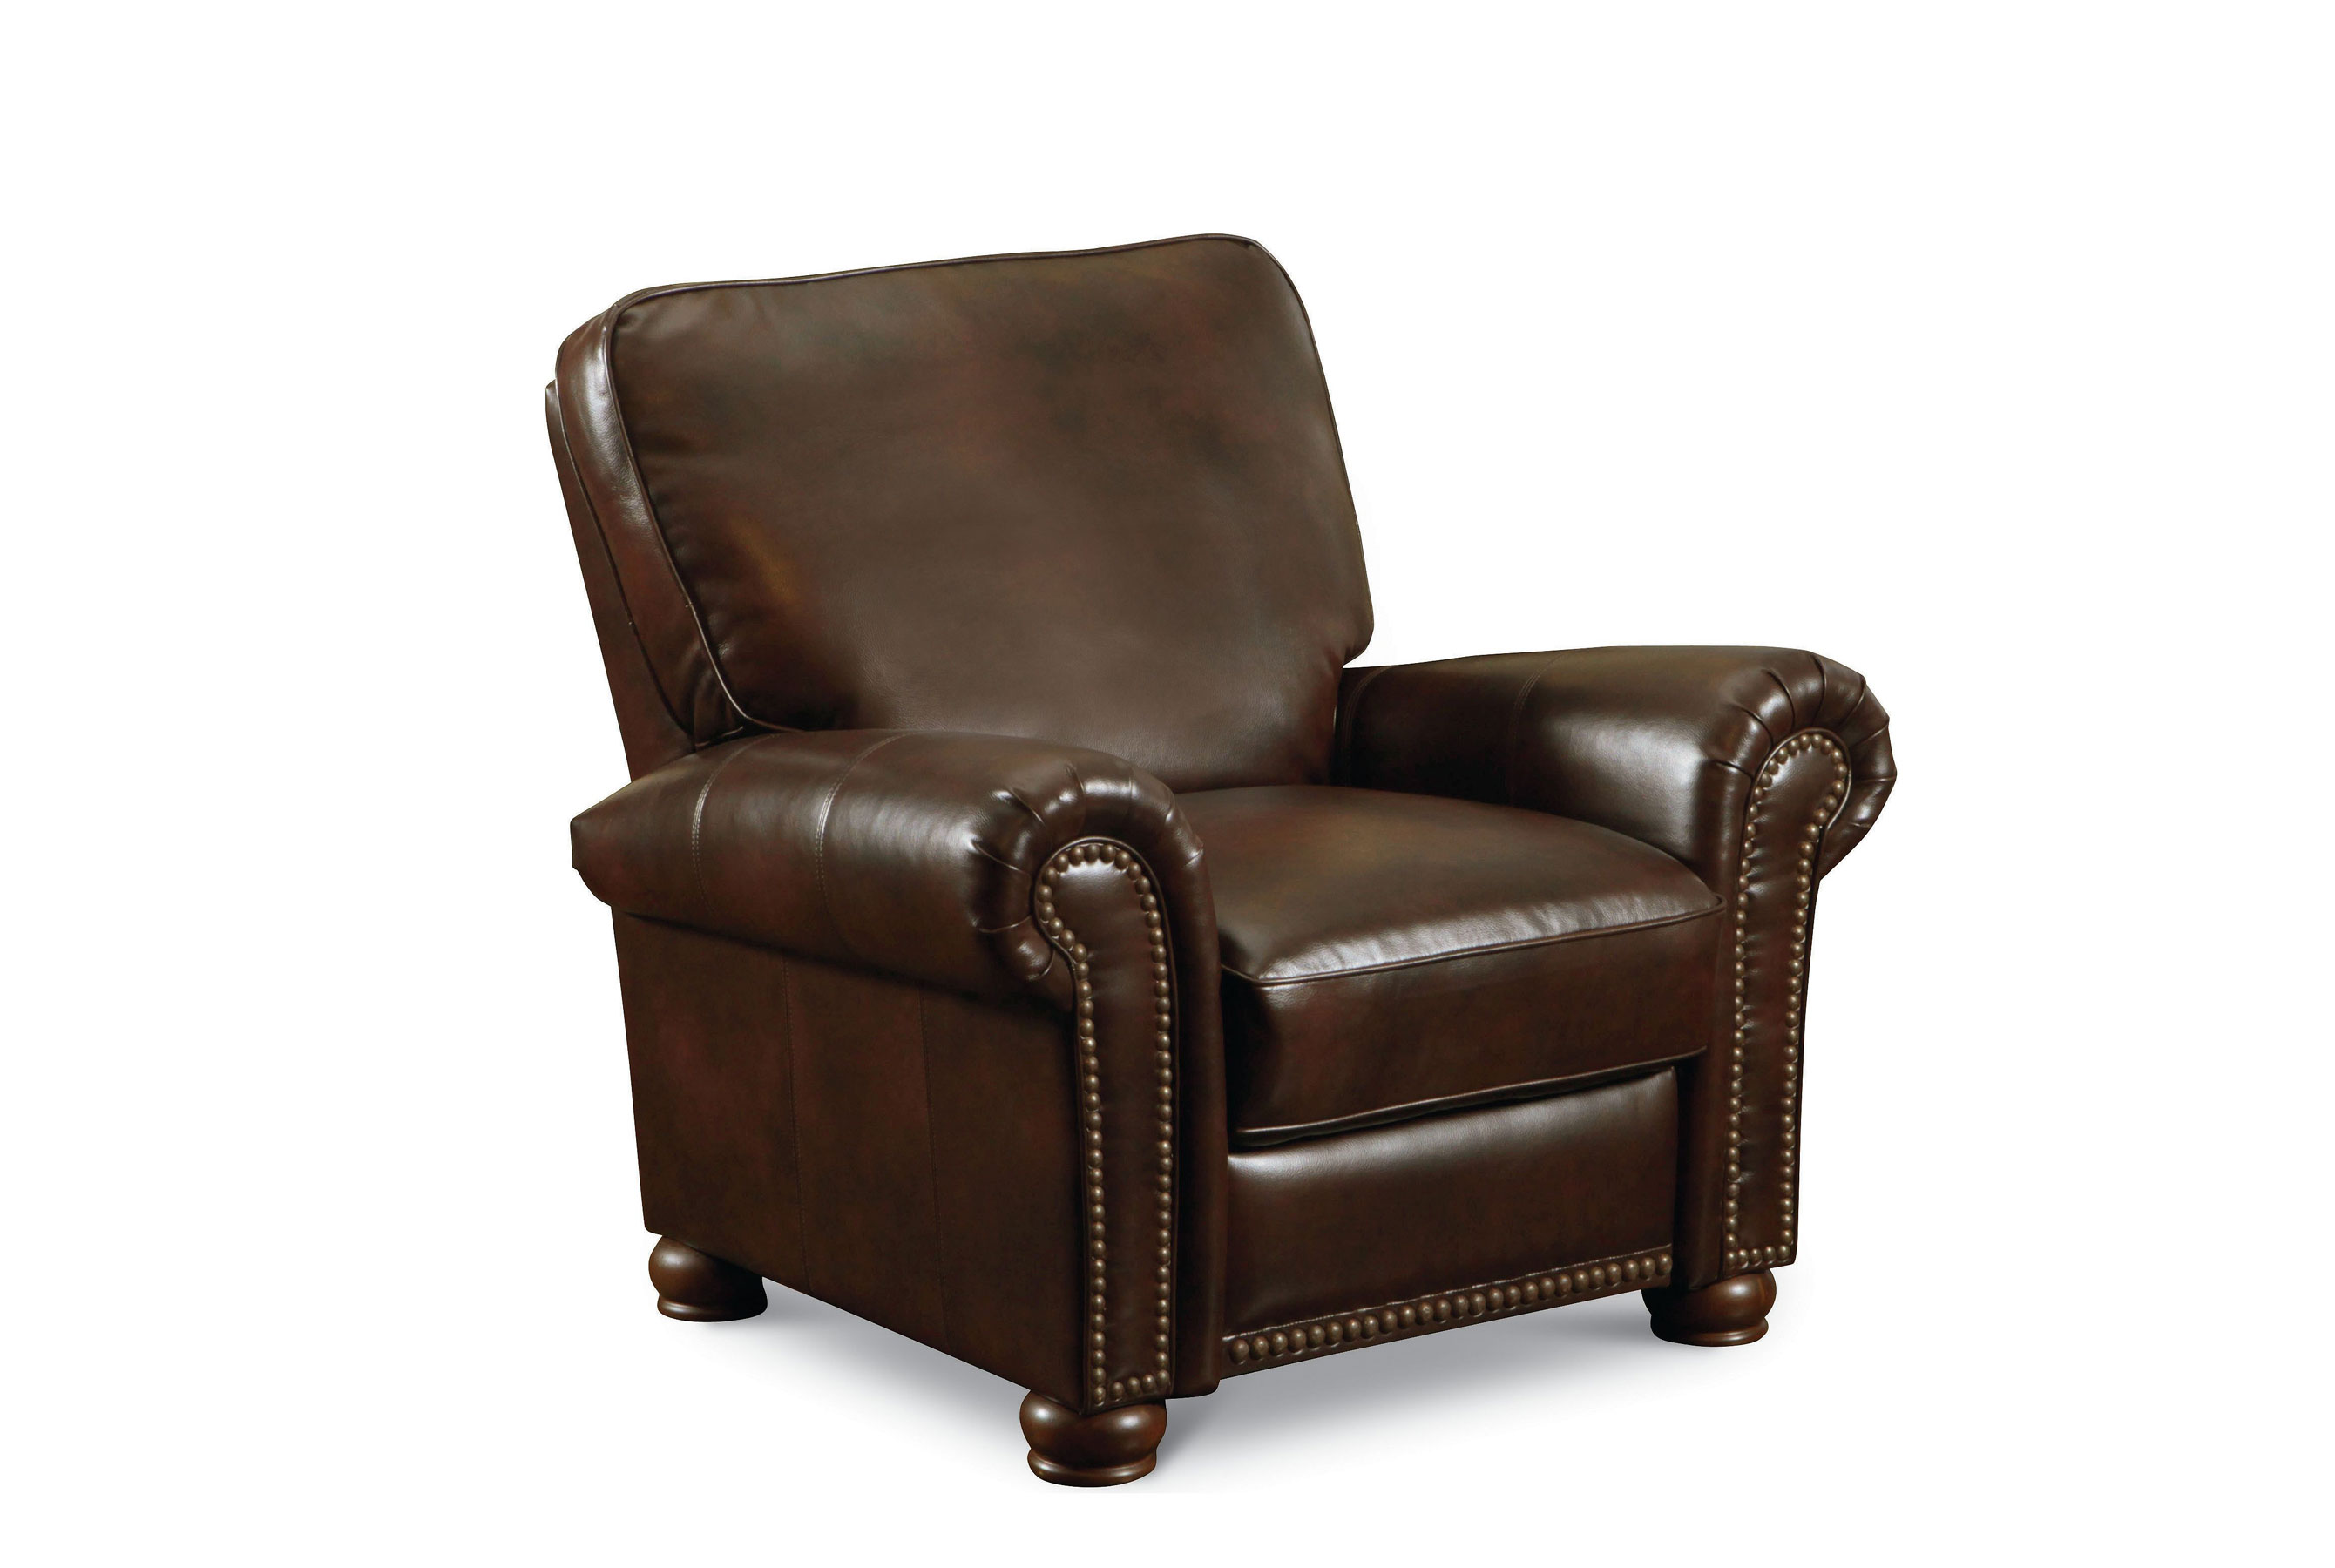 Incredible Benson 90 Leather 630 Sofa Sofas And Sectionals Creativecarmelina Interior Chair Design Creativecarmelinacom